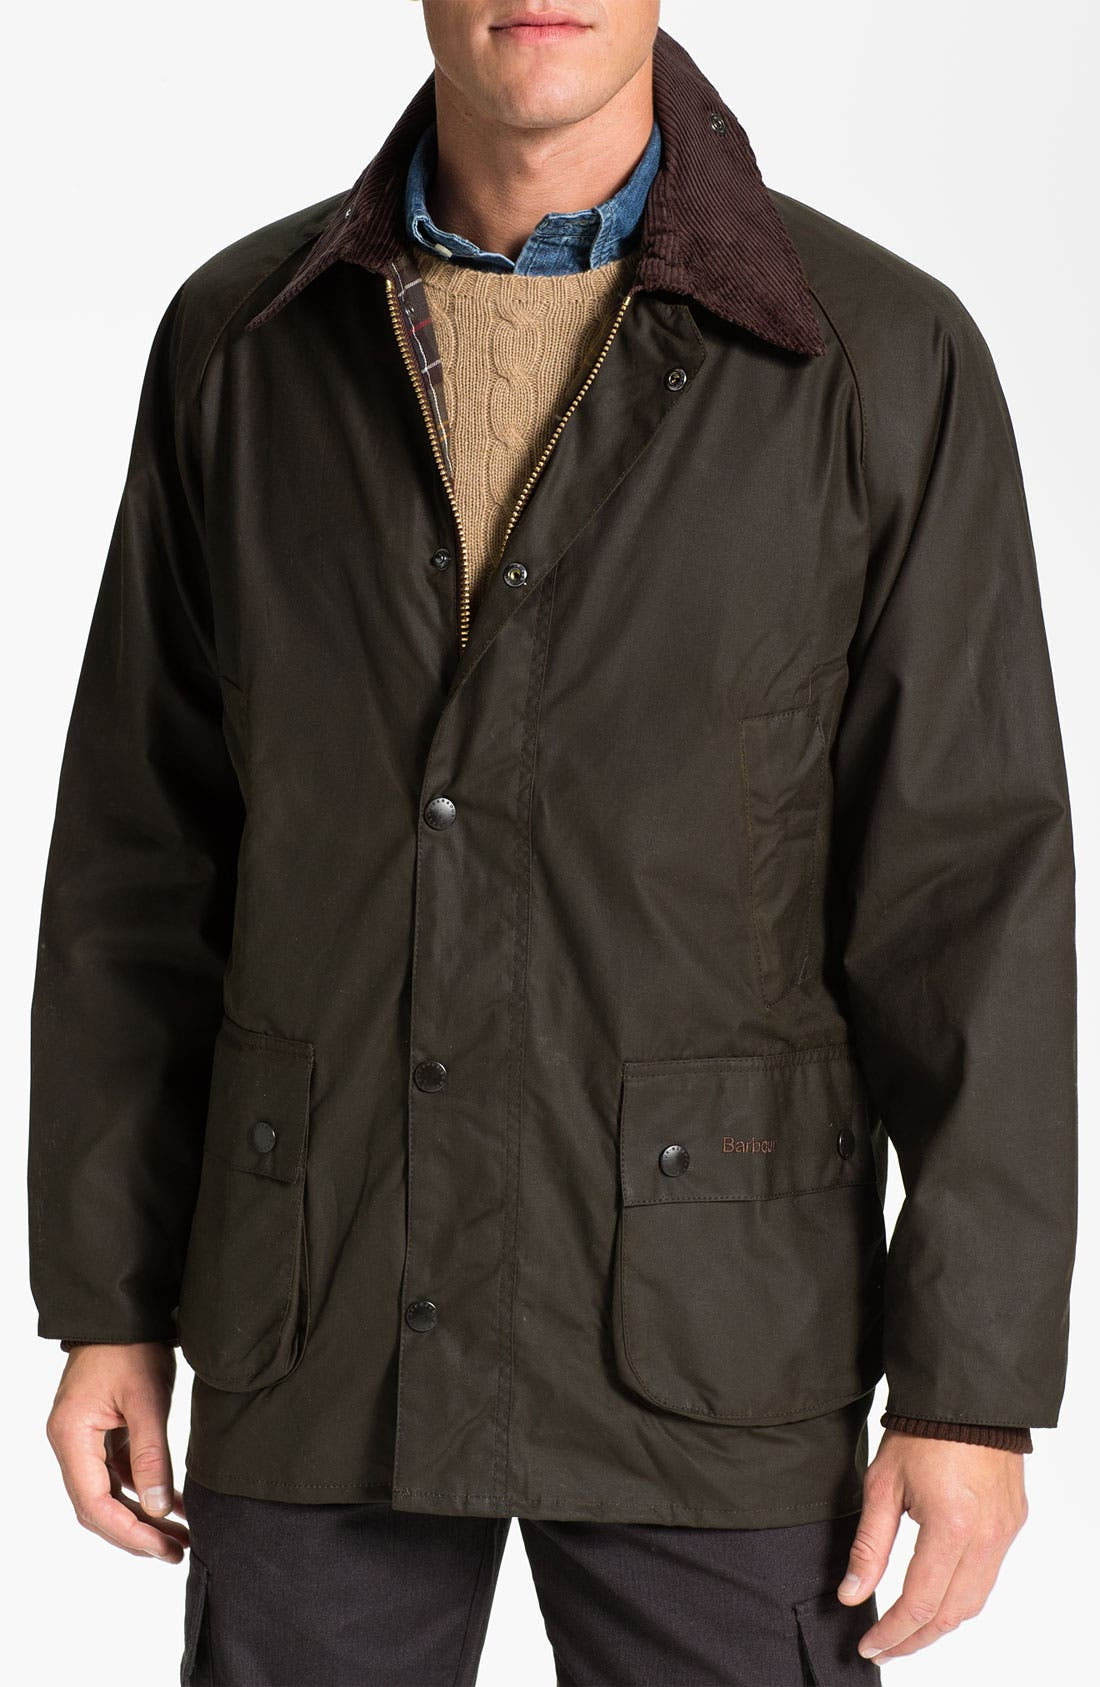 Main Image - Barbour 'Bedale' Relaxed Fit Waterproof Waxed Cotton Jacket